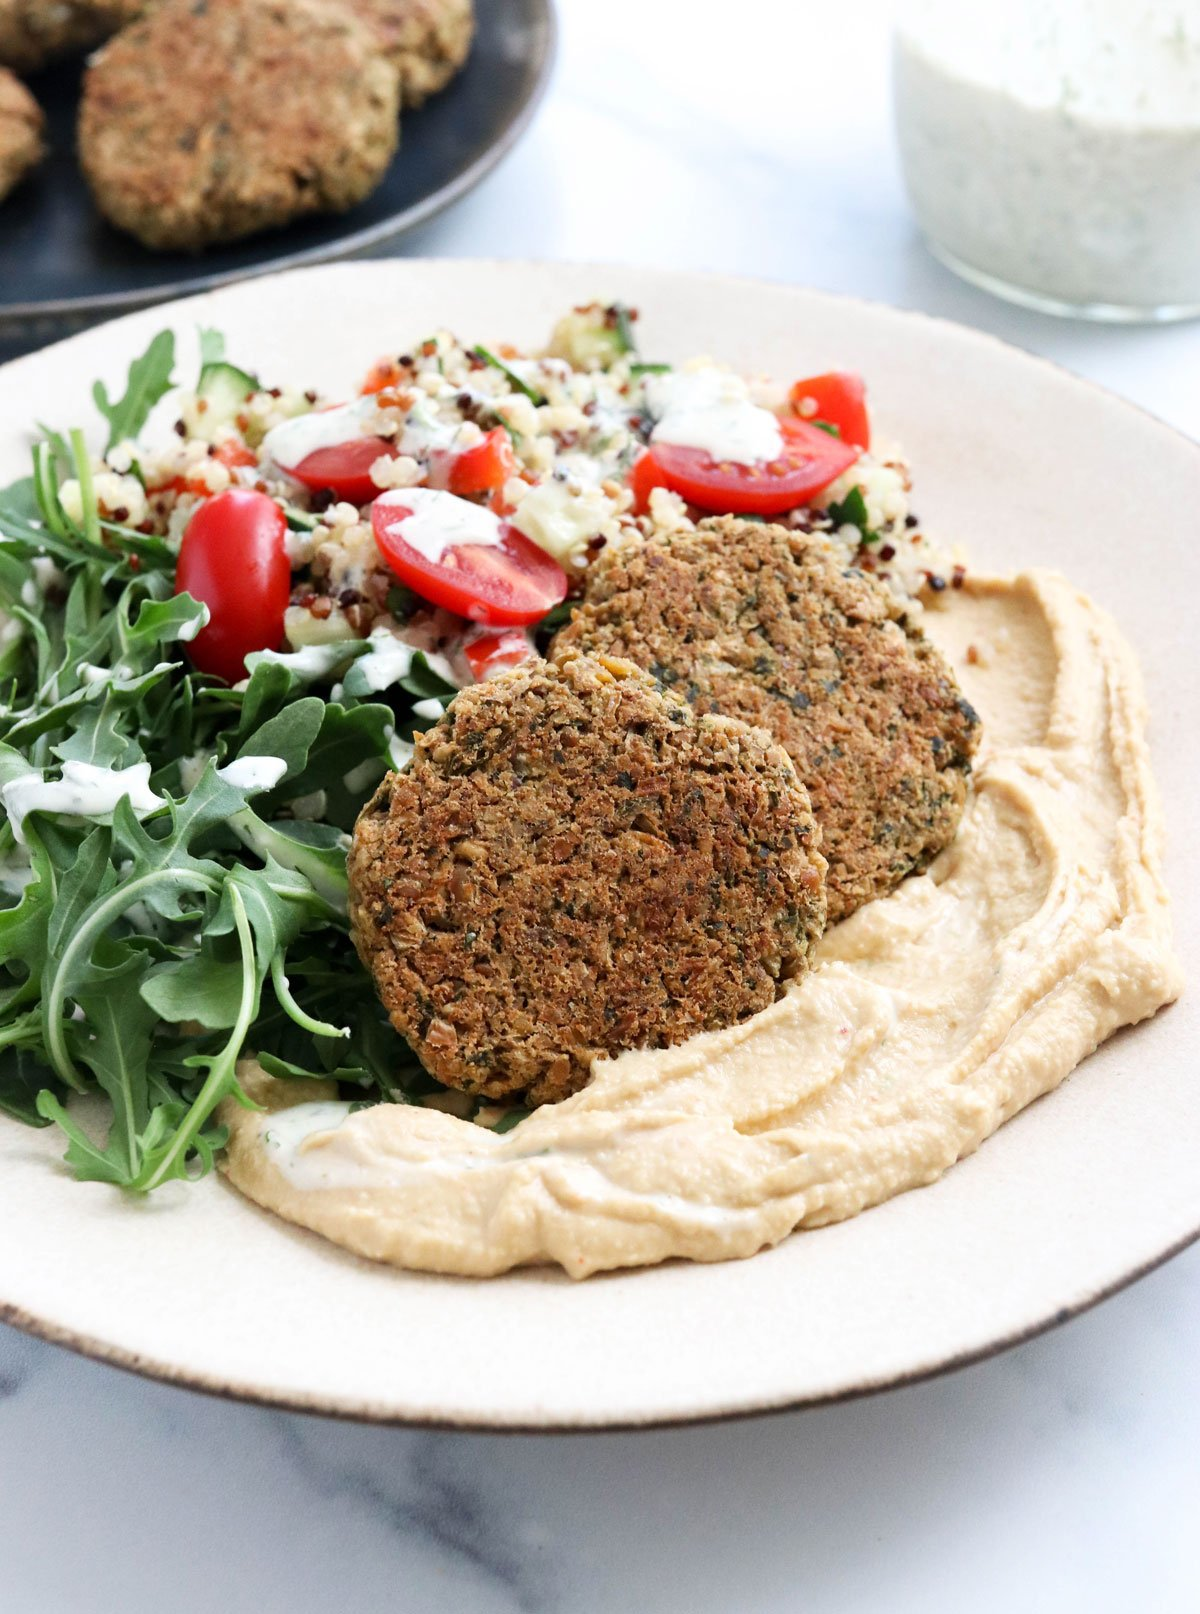 baked falafel on plate with hummus